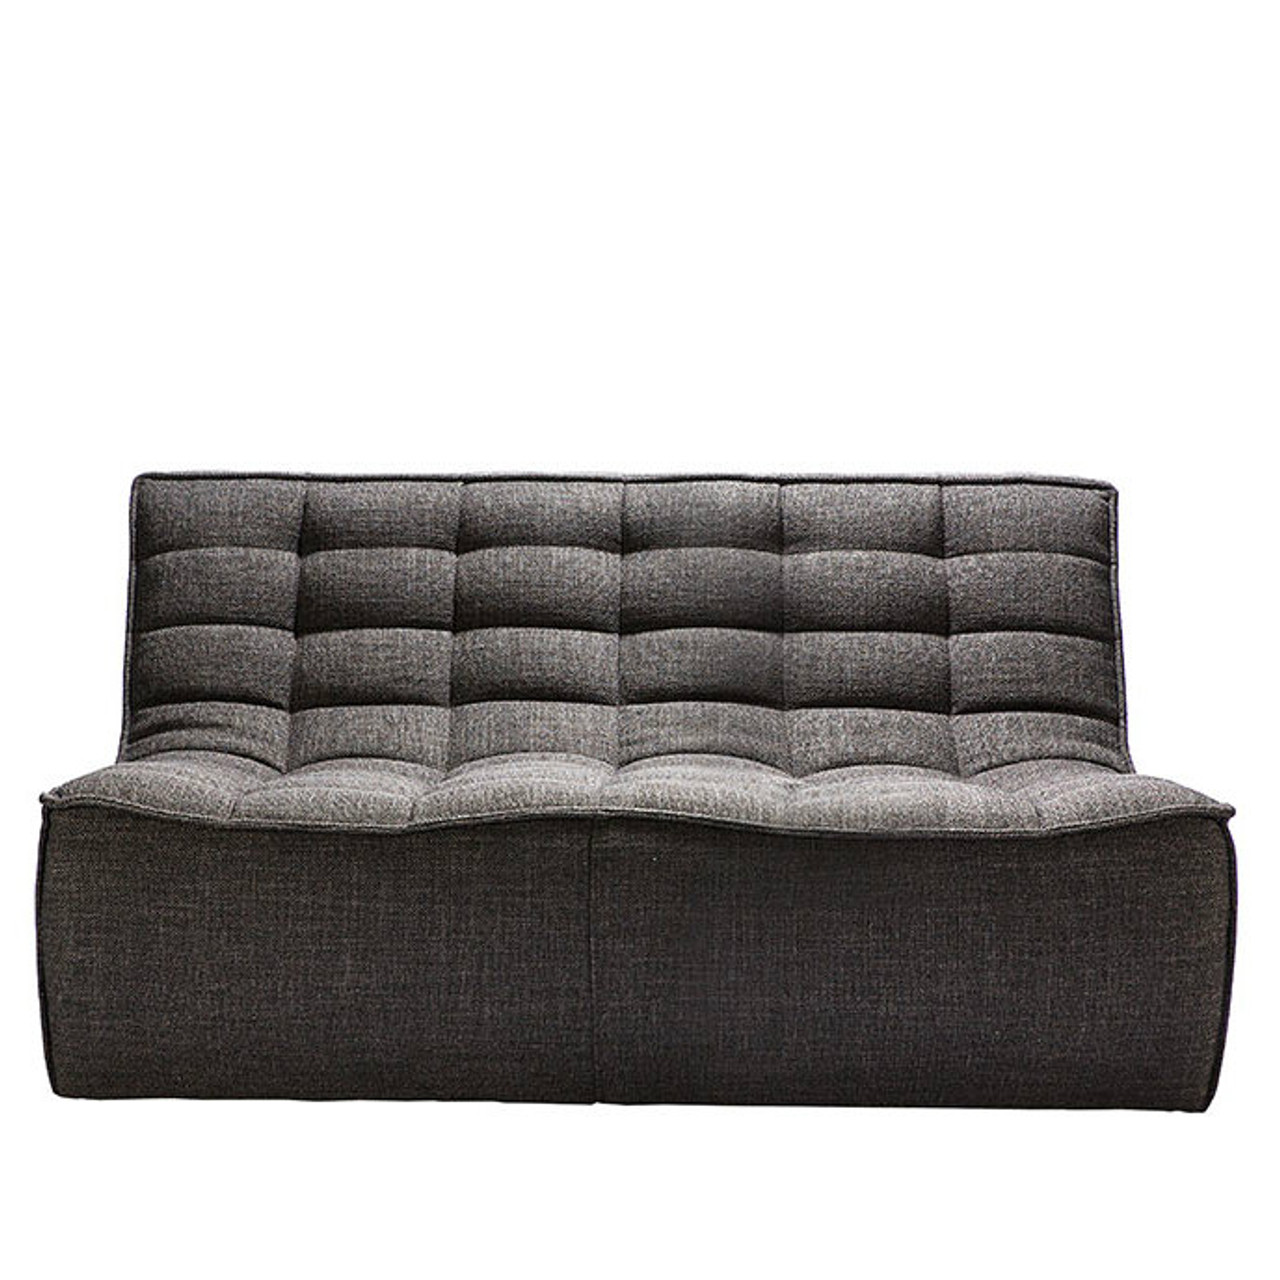 Roset Modern Modular Sectional Sofa - 2 Seater